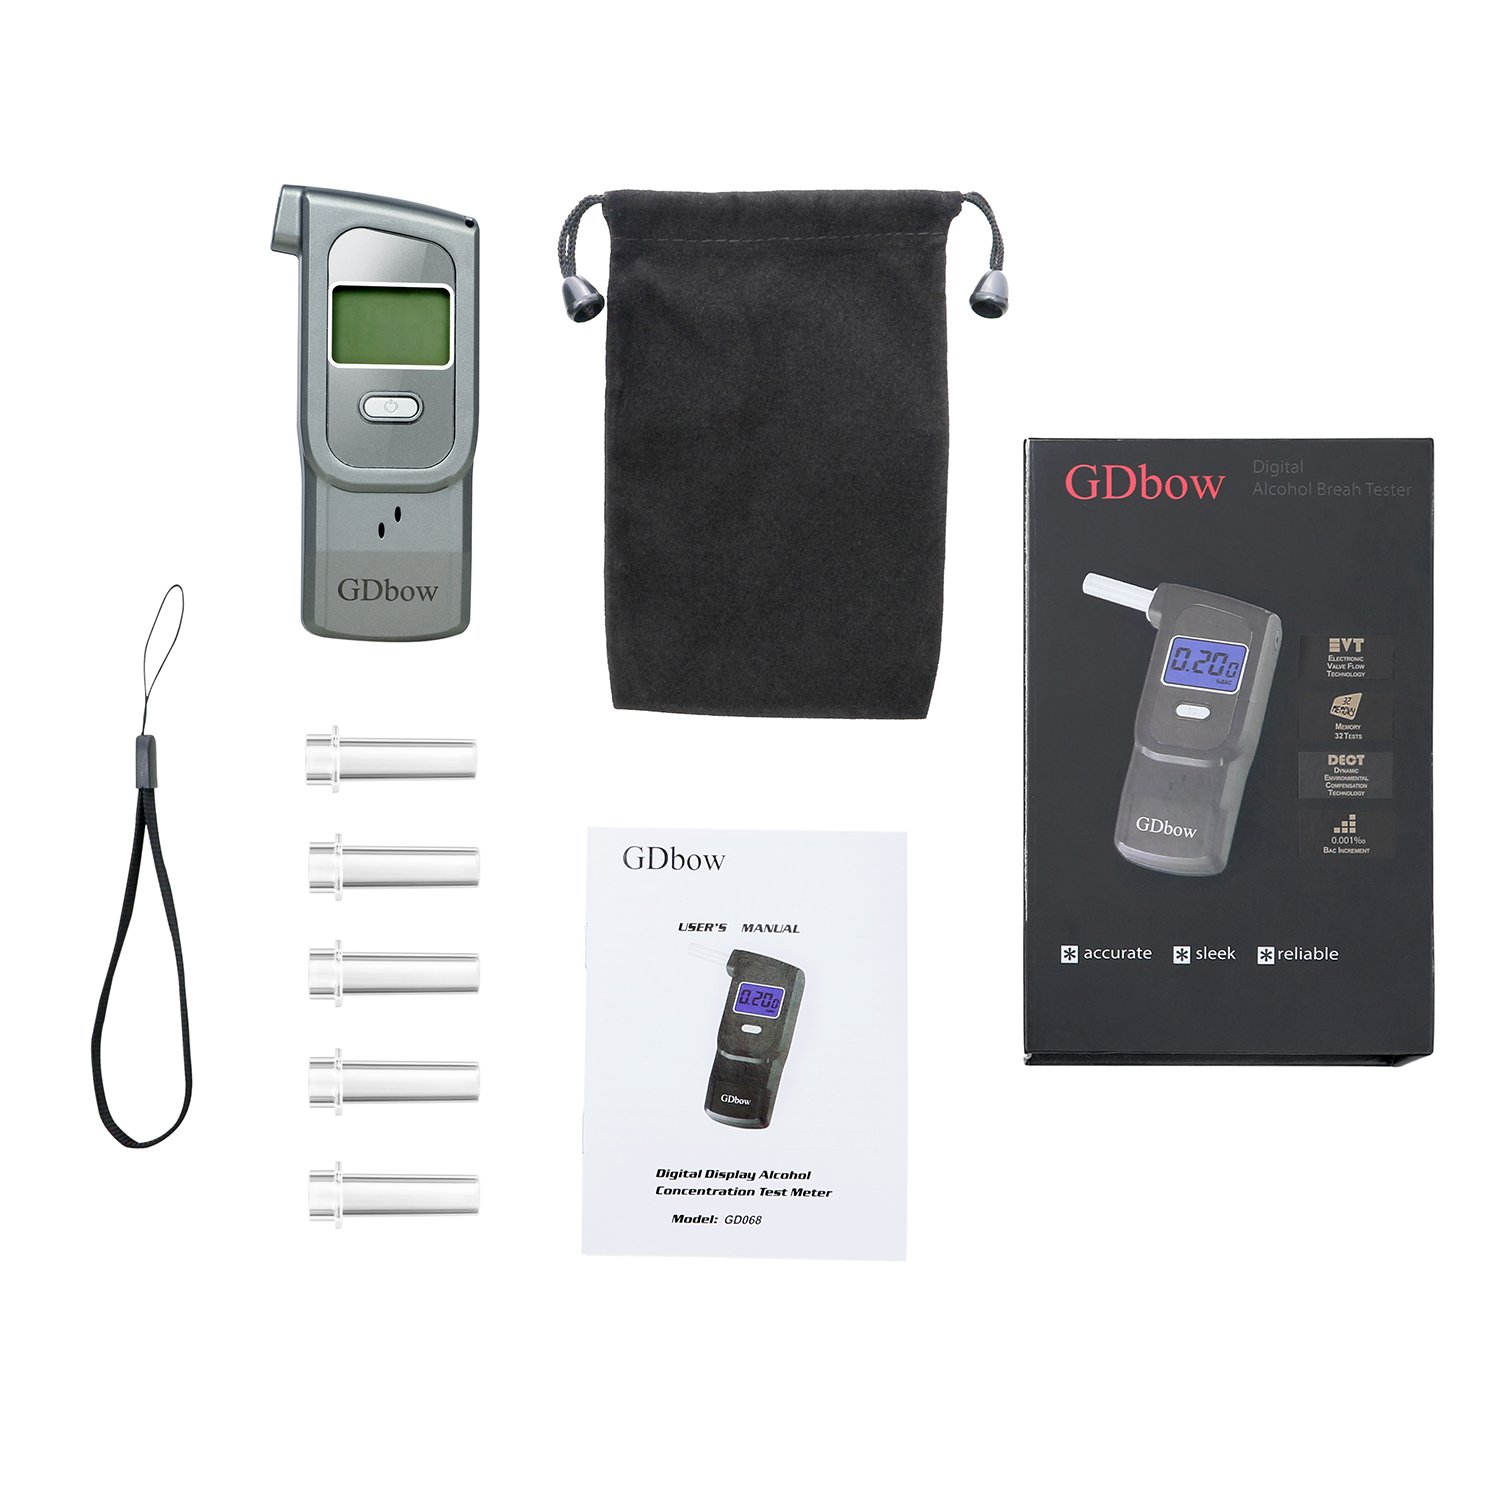 GDbow PortableBreathalyzer AlcoholTester Recording 32 Testing Results with 5 Mouthpieces for Personal Use -Grey by GDbow (Image #9)